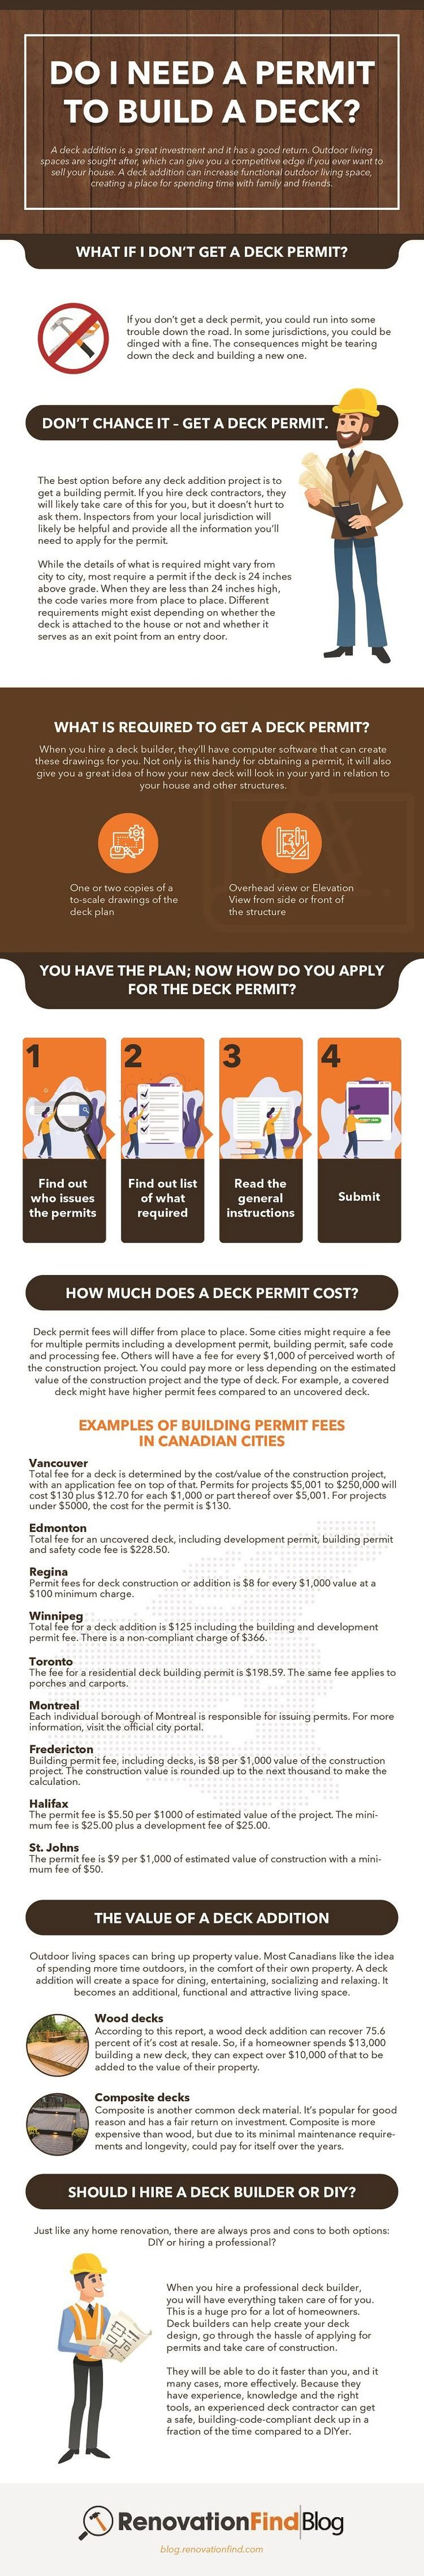 Do i need a permit to build a deck infographic